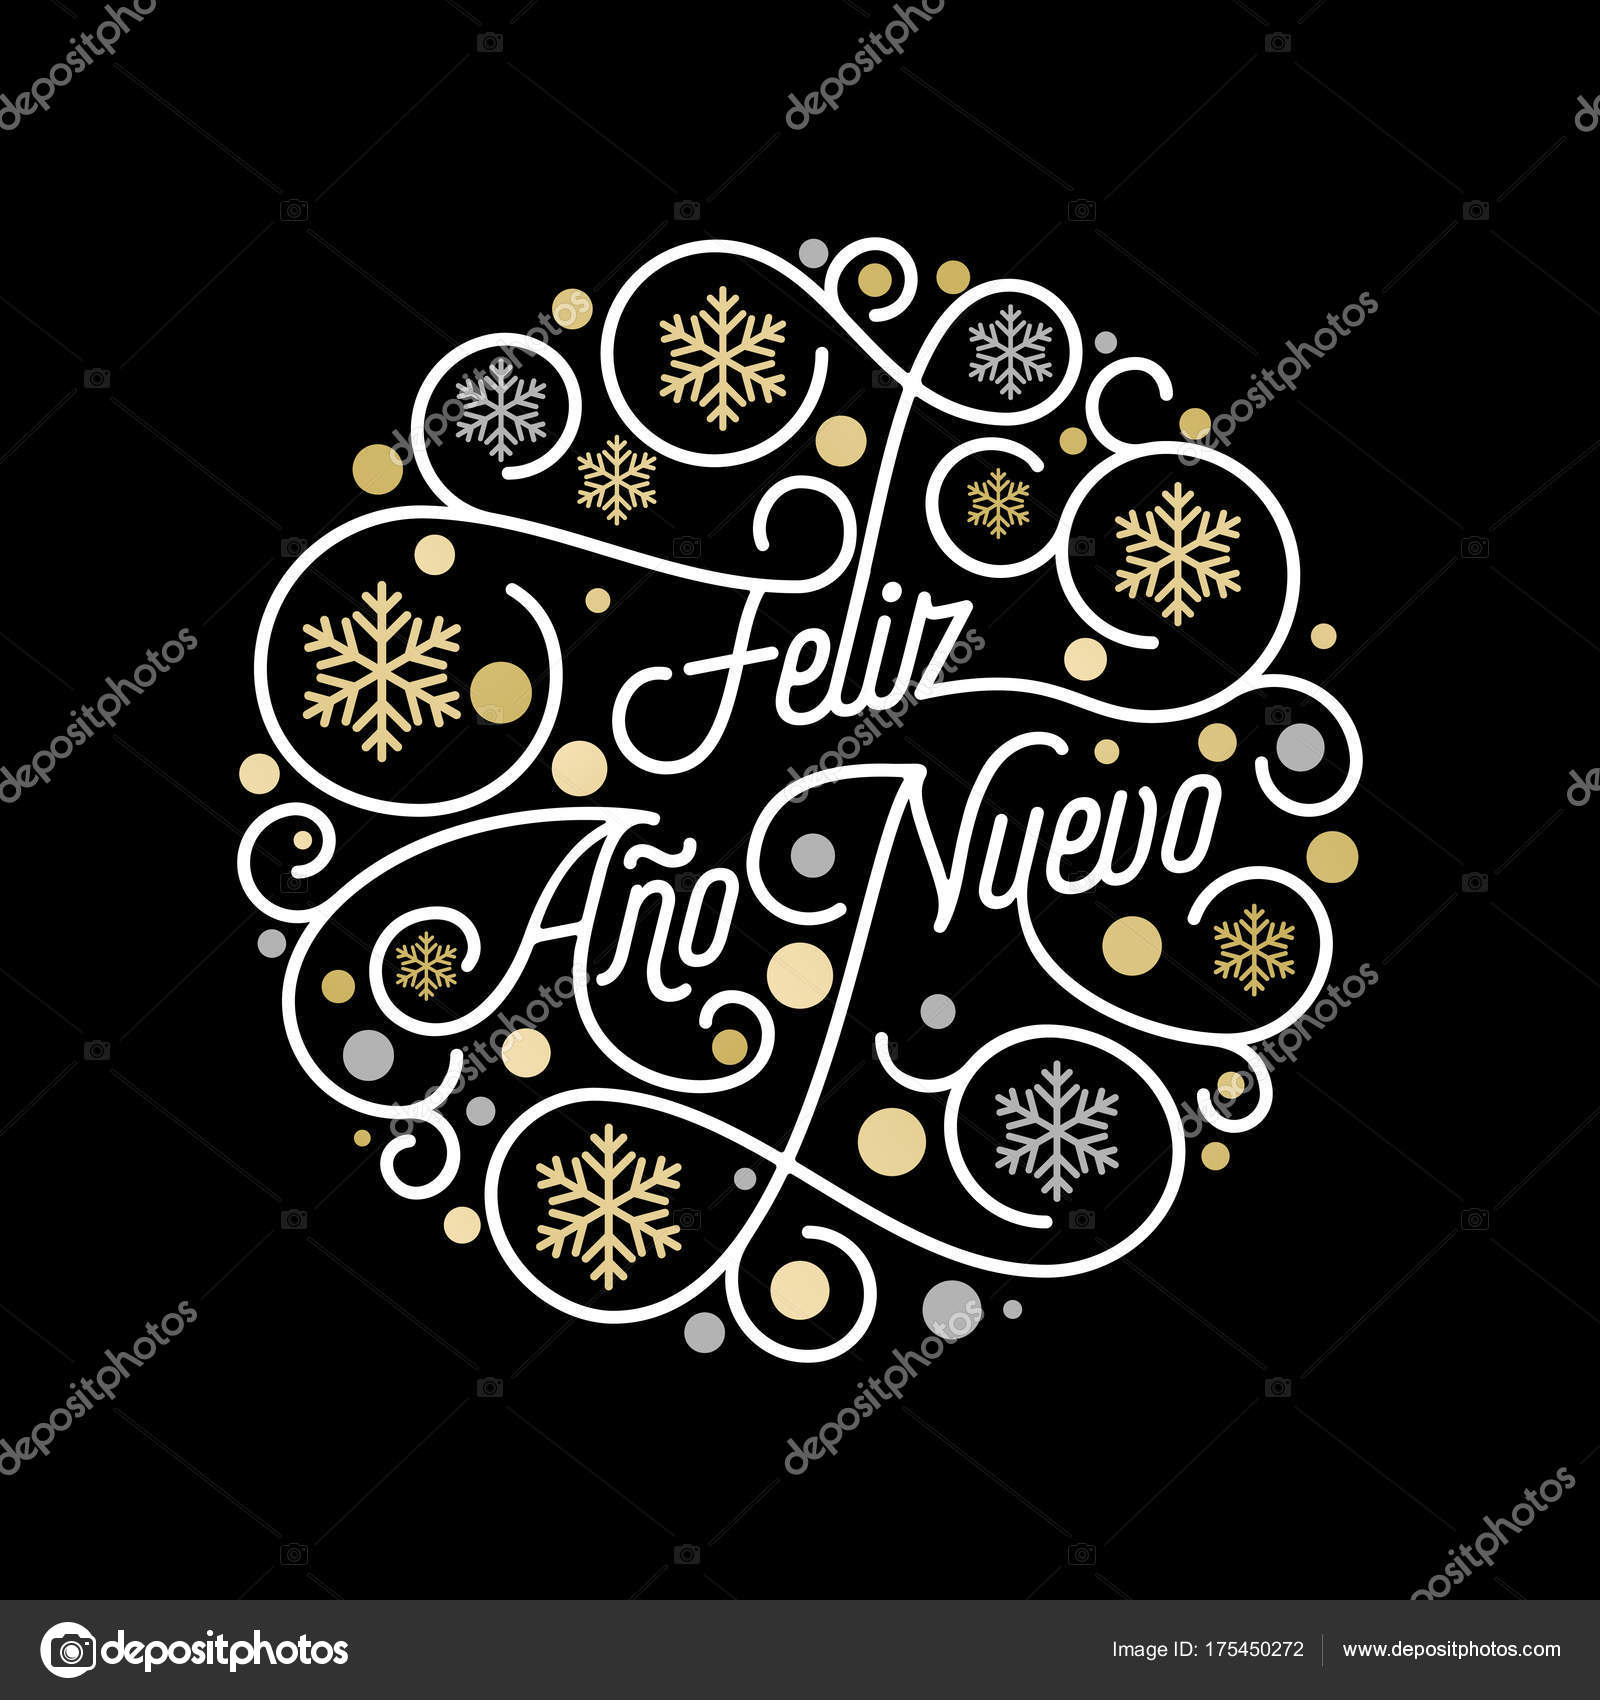 feliz ano nuevo spanish happy new year navidad calligraphy lettering and golden snowflake pattern on white